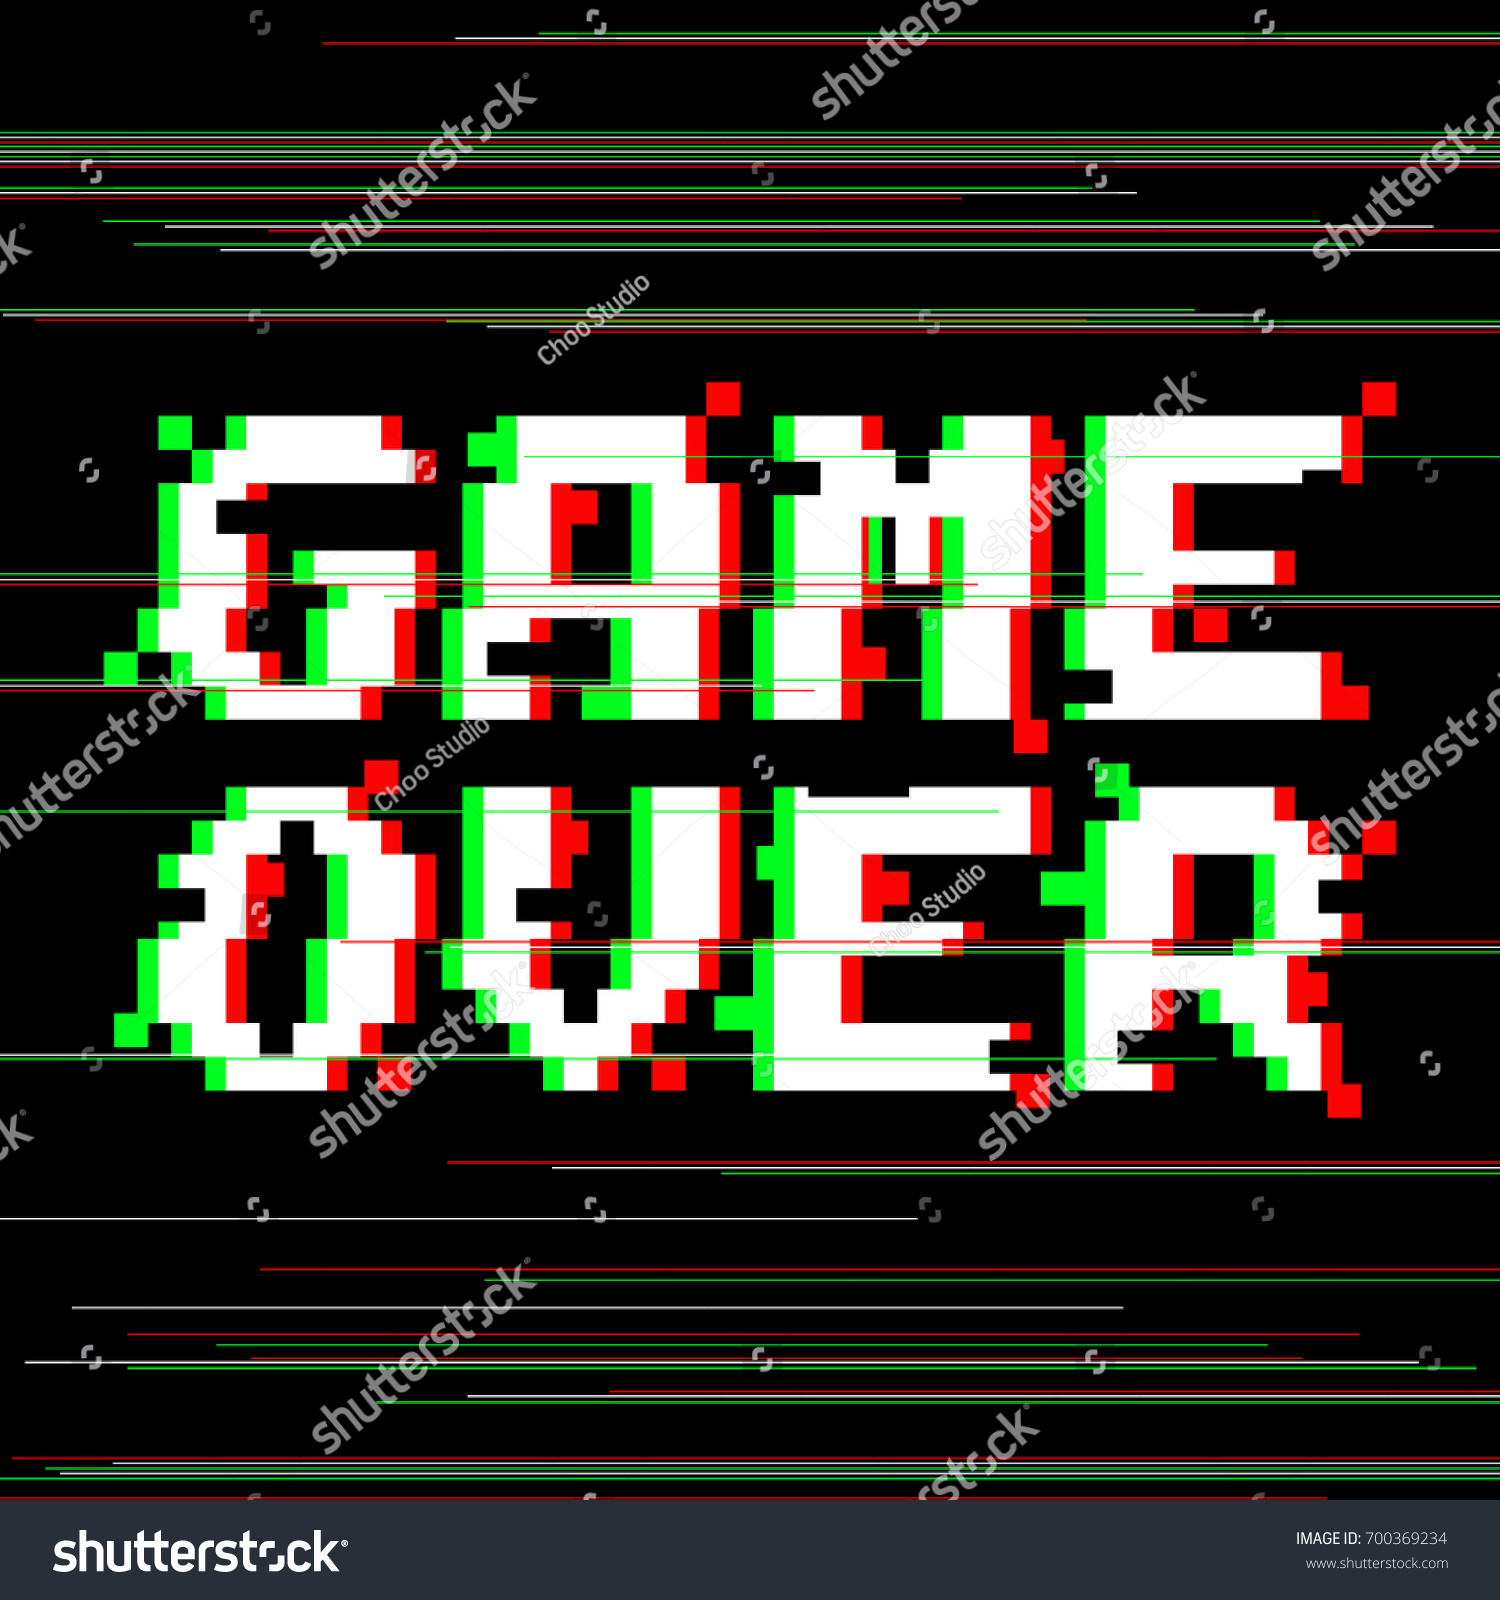 Vector Drawing Lines Games : Vector game over phrase pixel art image vectorielle